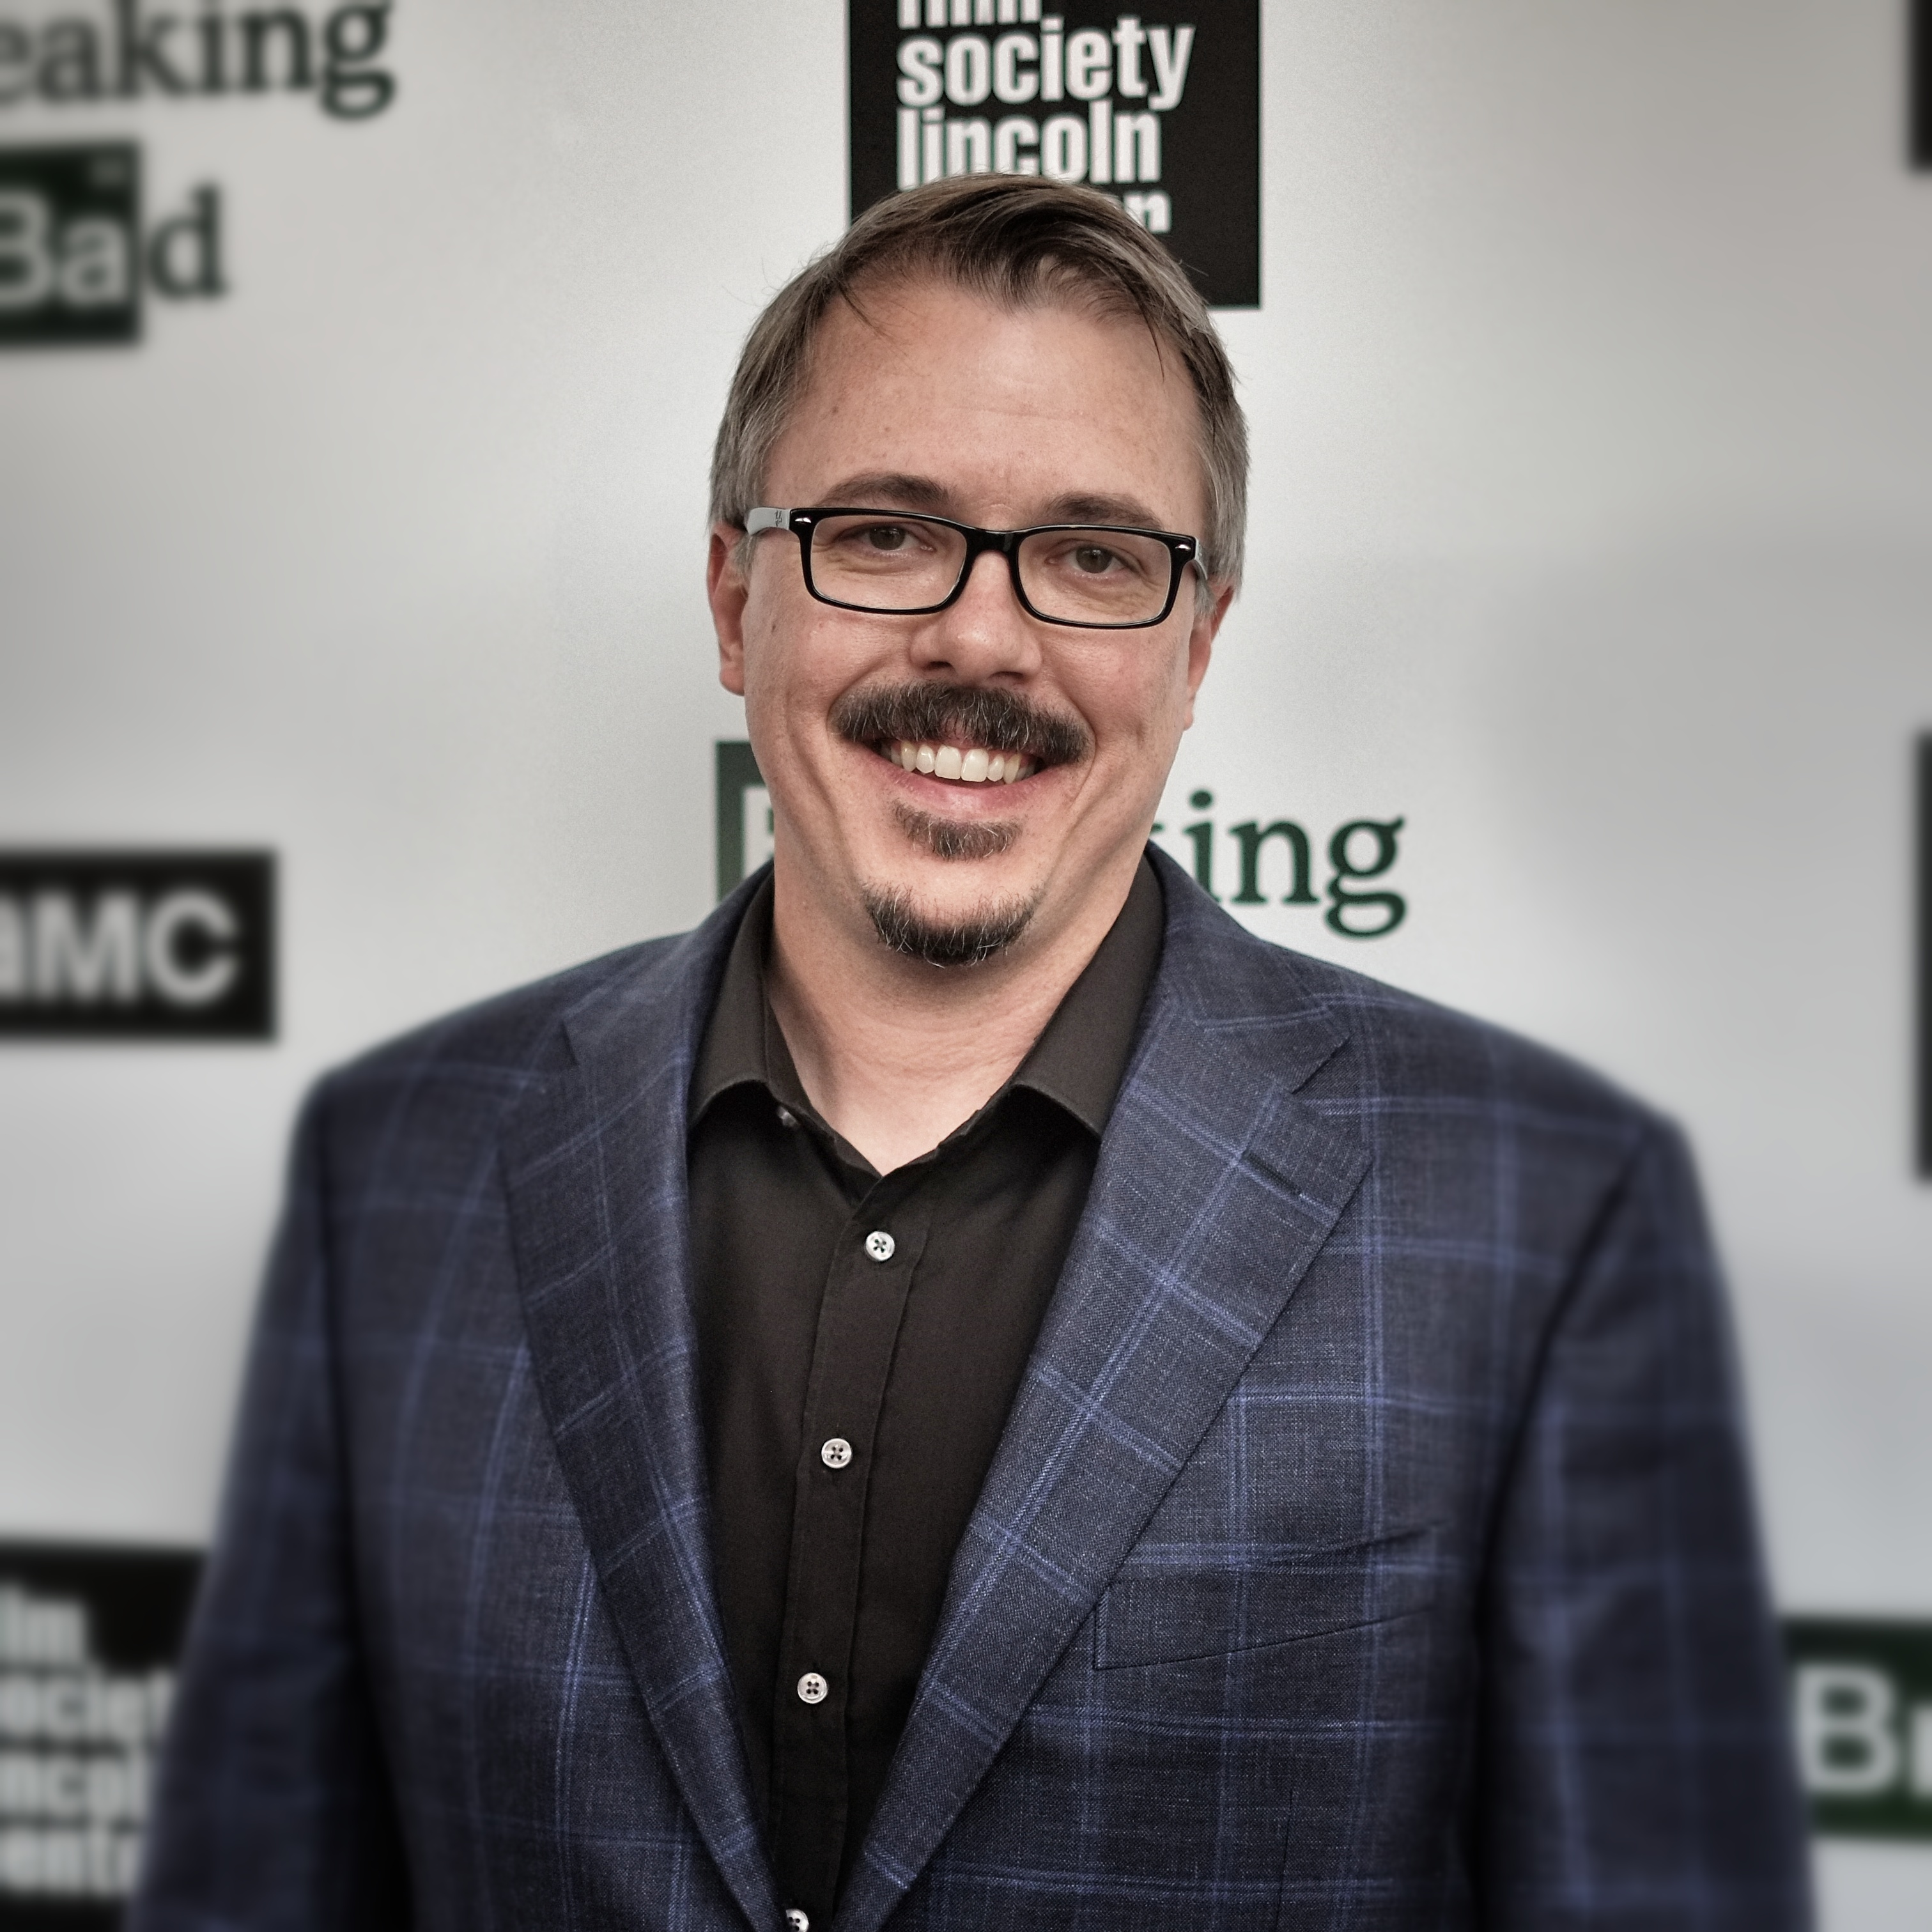 Is vince gilligan writing a new show